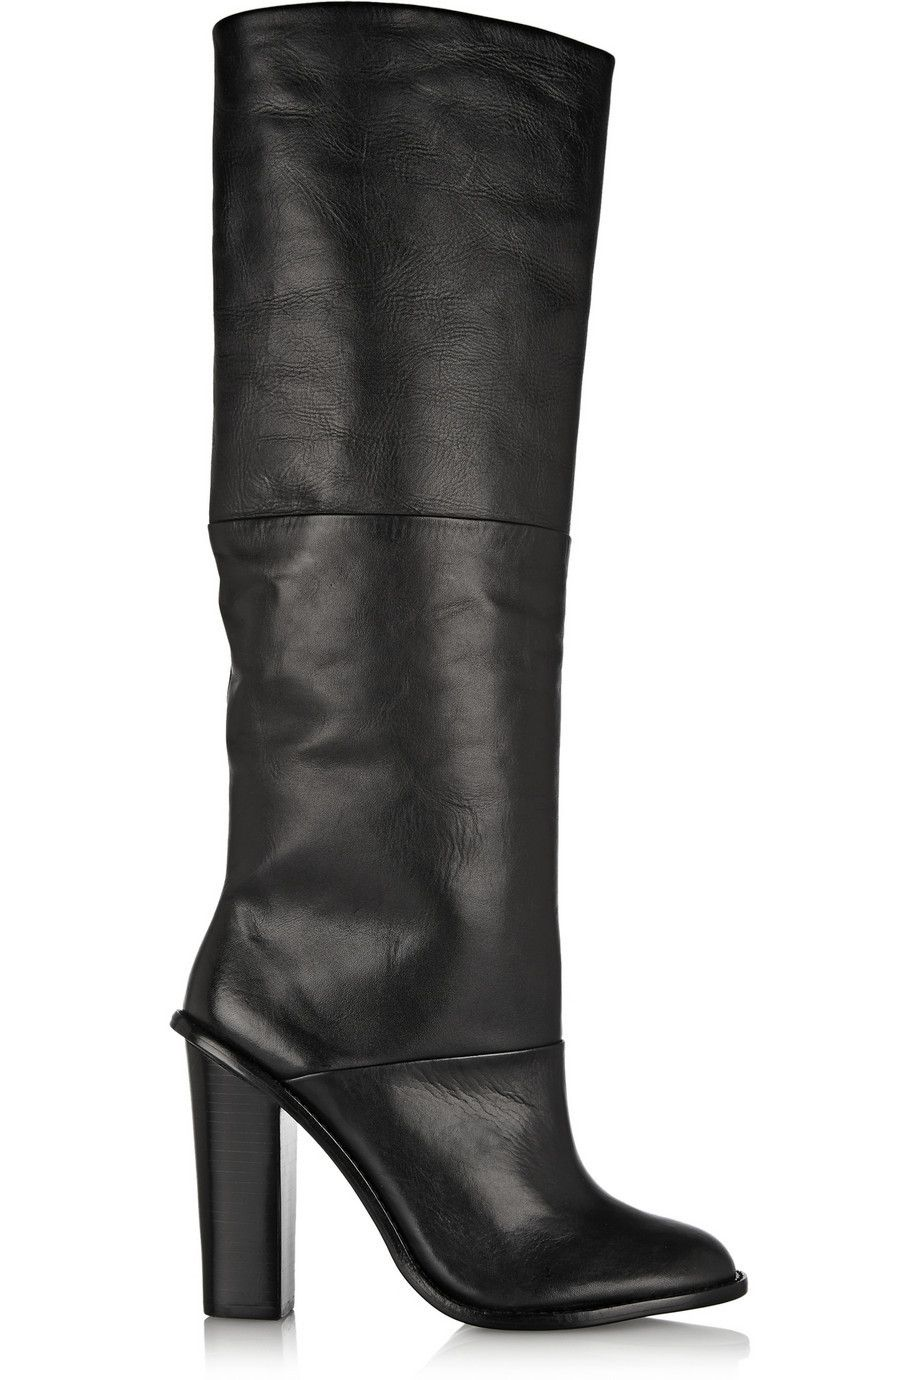 Vlada leather knee boots by Tibi - Found on HeartThis.com @HeartThis | See item http://www.heartthis.com/product/321122585997215855/